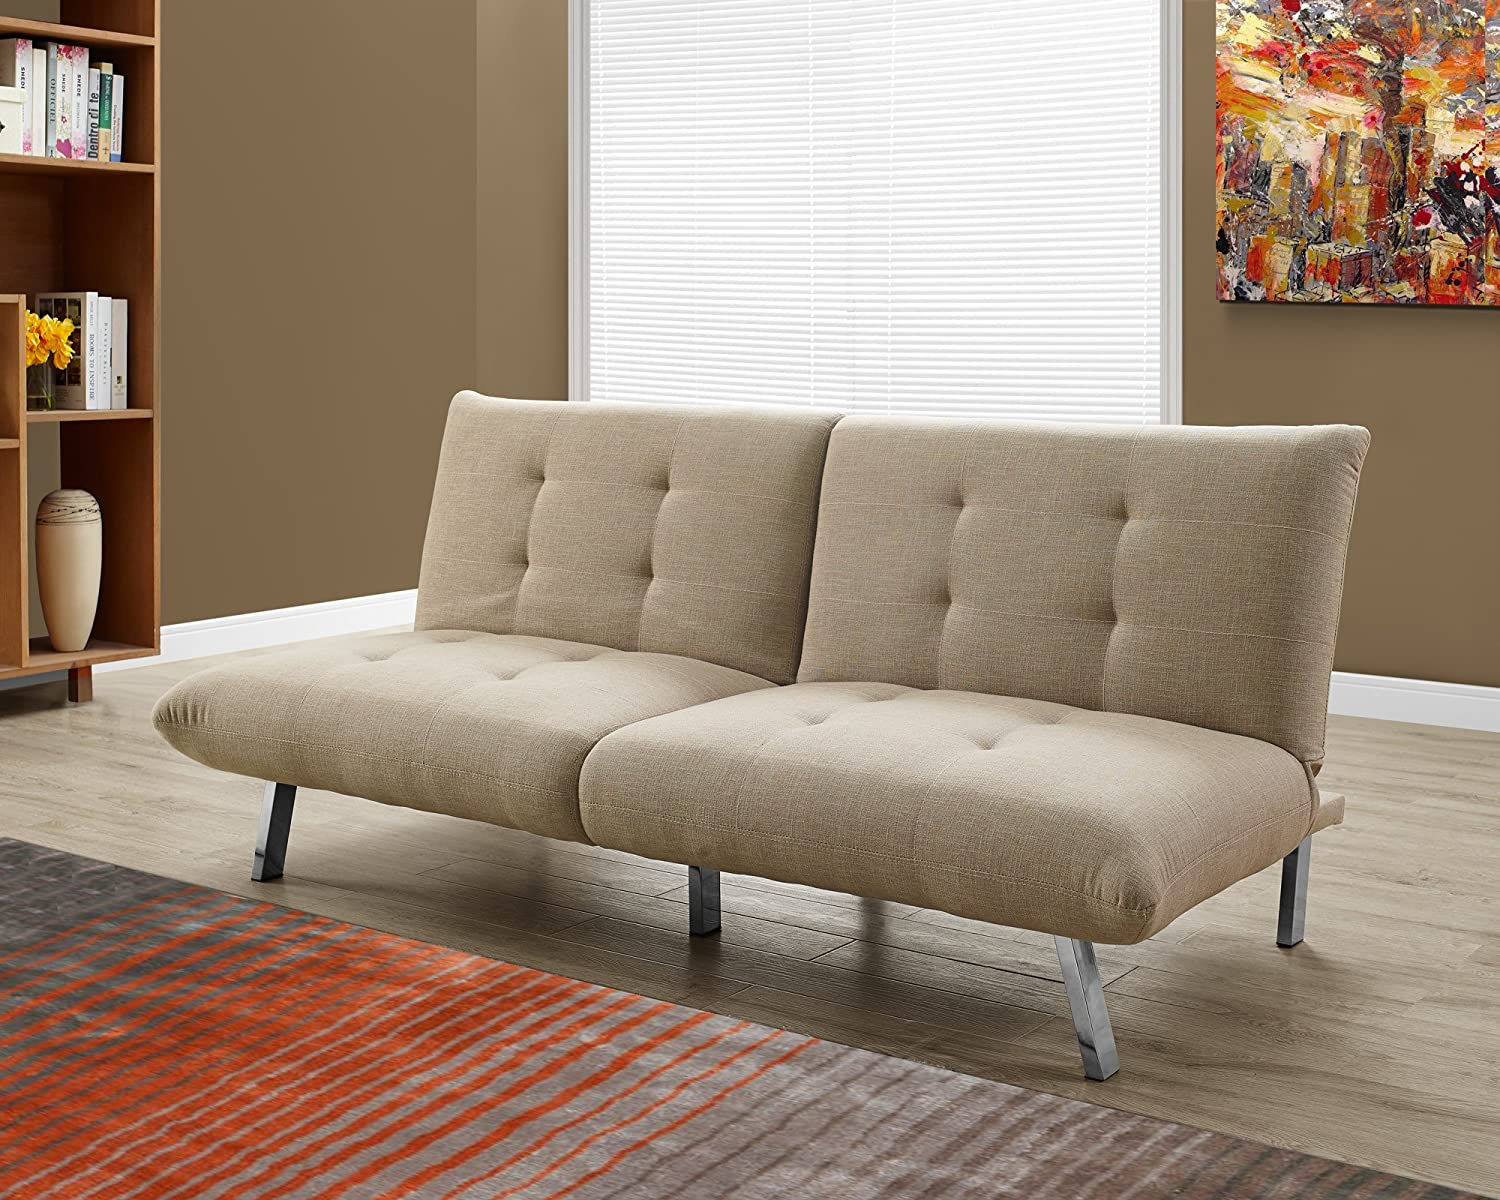 Monarch Specialties I 8969 Split Back Click Clack Sand Linen Futon, 71